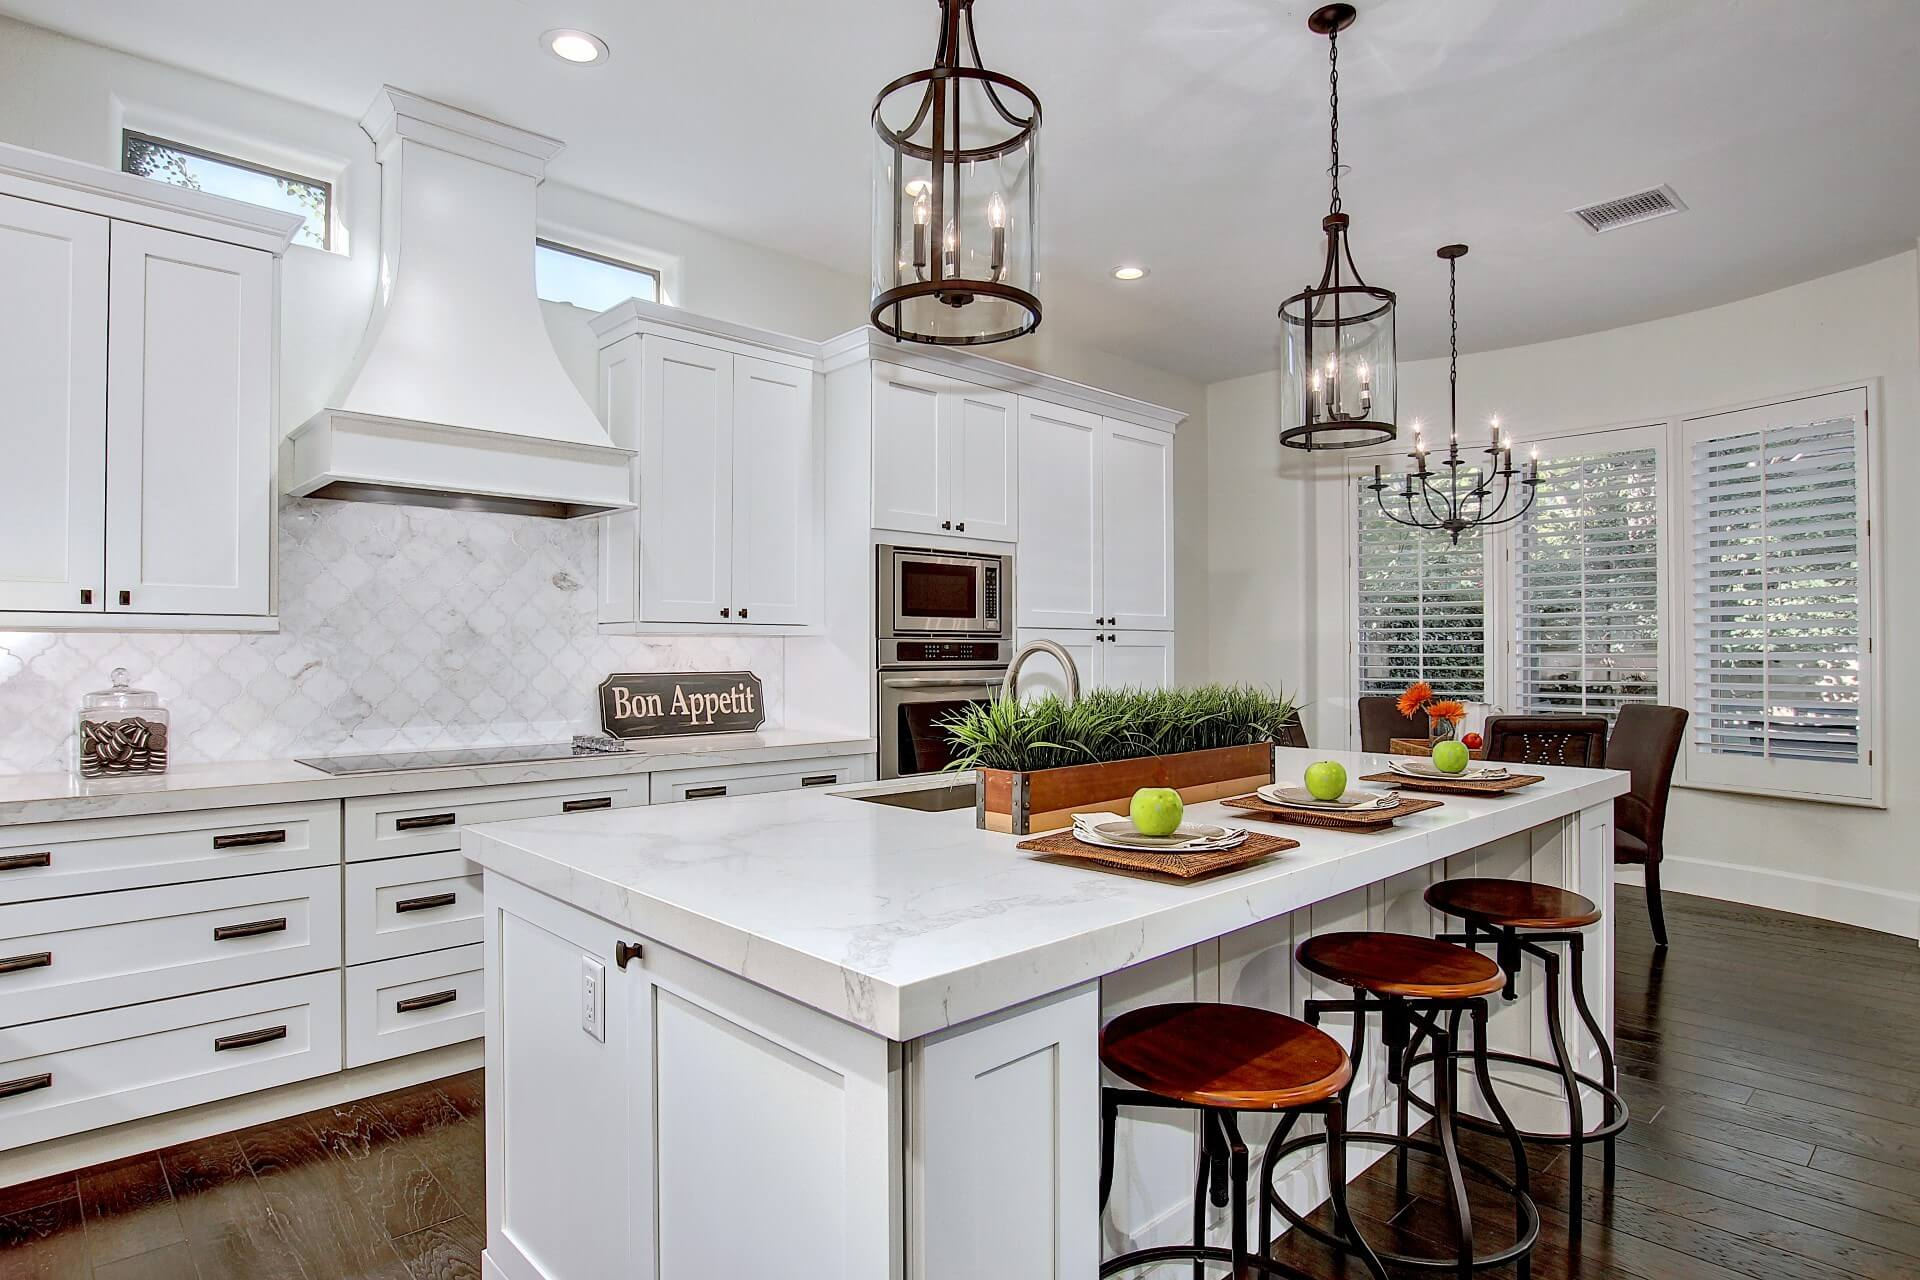 This Kitchen Includes Sollid Cabinetryu0027s White Shaker Cabinets With Jeffrey  Alexander Cabinet Hardware And, MSI Quartz Statuary Classique Countertops.